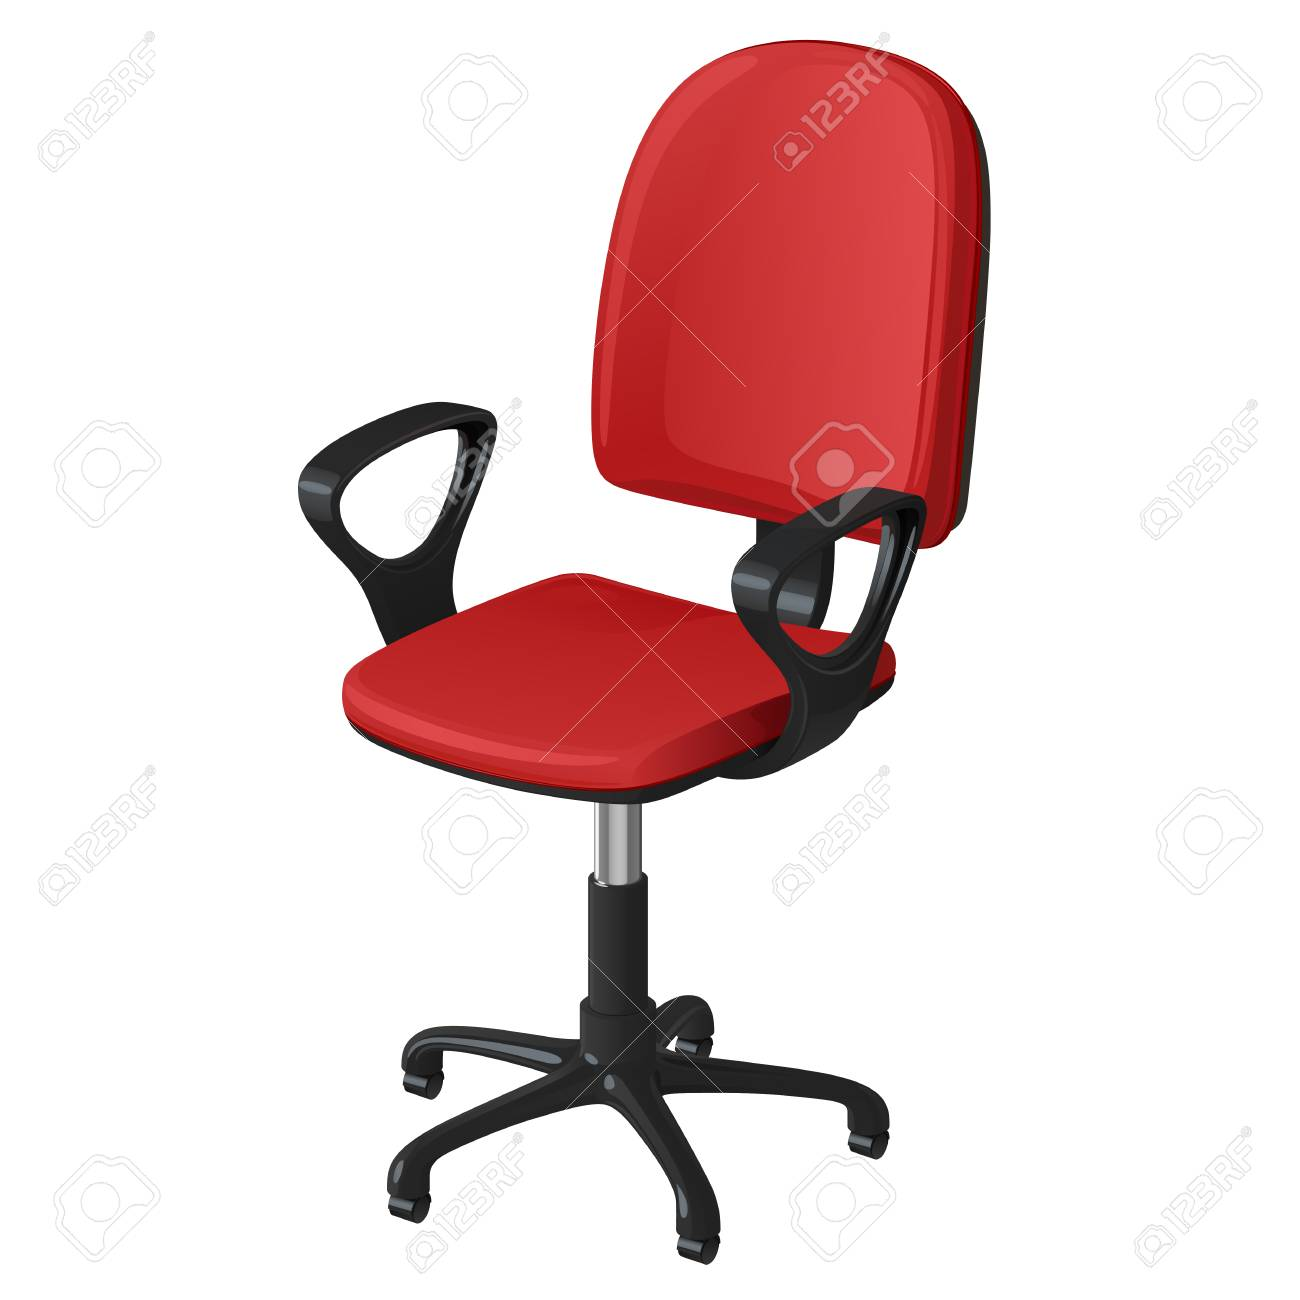 Pleasing Office Swivel Chair On Castors With Red Seat And Backrest And Beatyapartments Chair Design Images Beatyapartmentscom